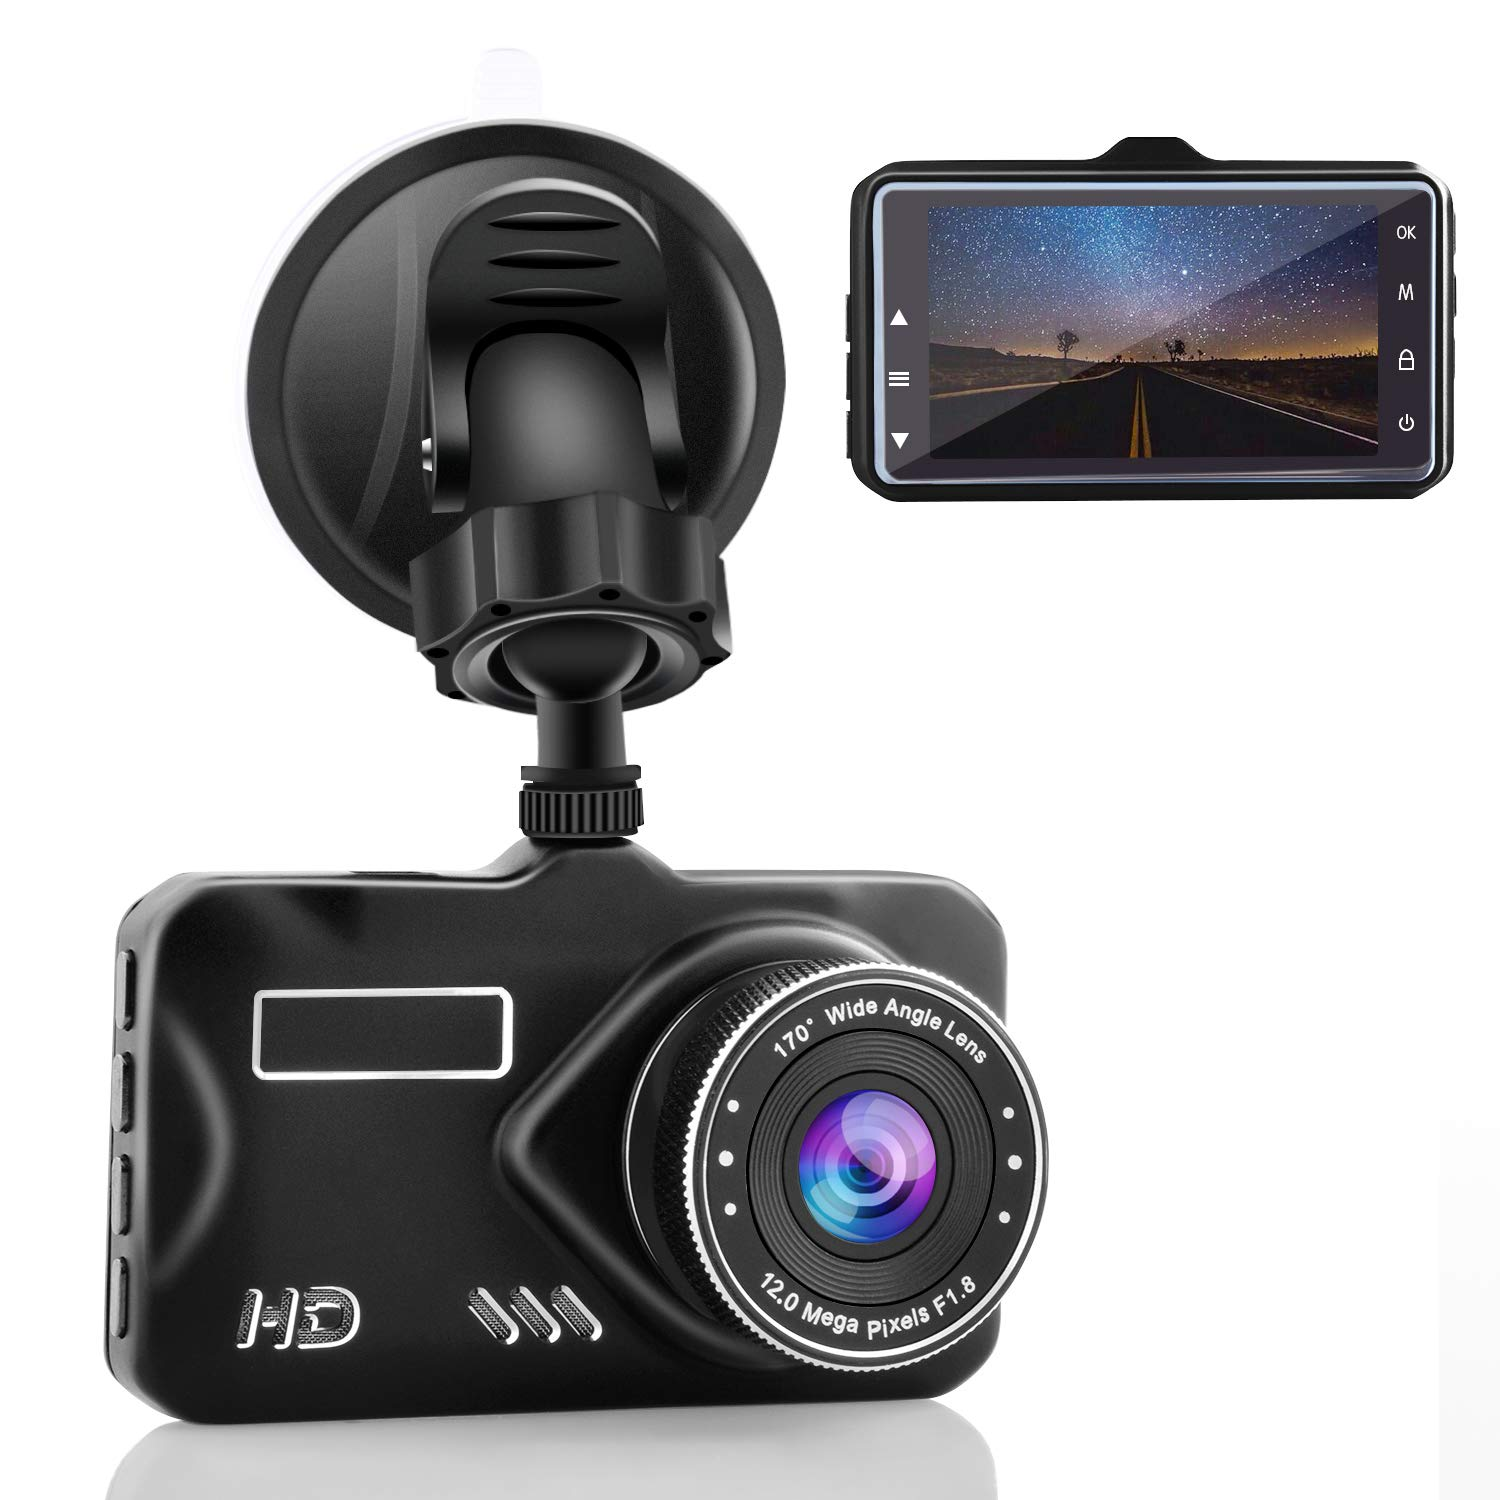 CHICOM 3' Dash Cam Full HD 1080P, 170 Degree Wide Angle LCD Dashboard Camera Car Video Recorder with Night Vision, G-Sensor, WDR, Loop Recording, Motion Detection, Parking Monitor (Black1)